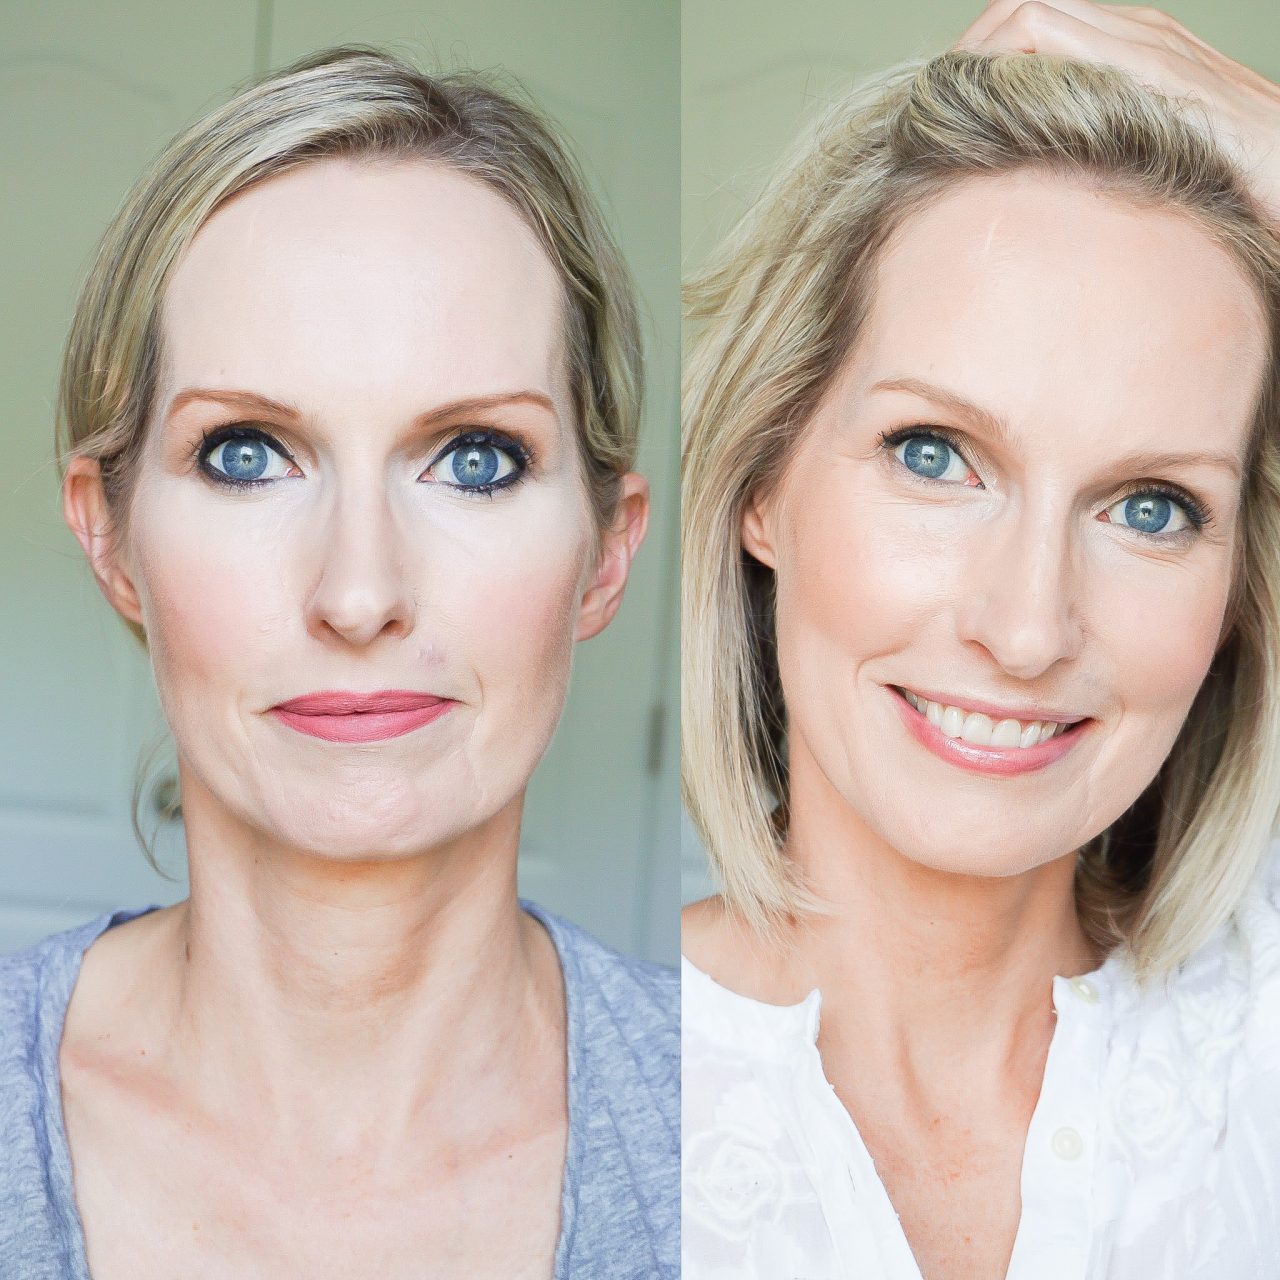 5 MAKEUP MISTAKES THAT MAKE YOU LOOK OLDER